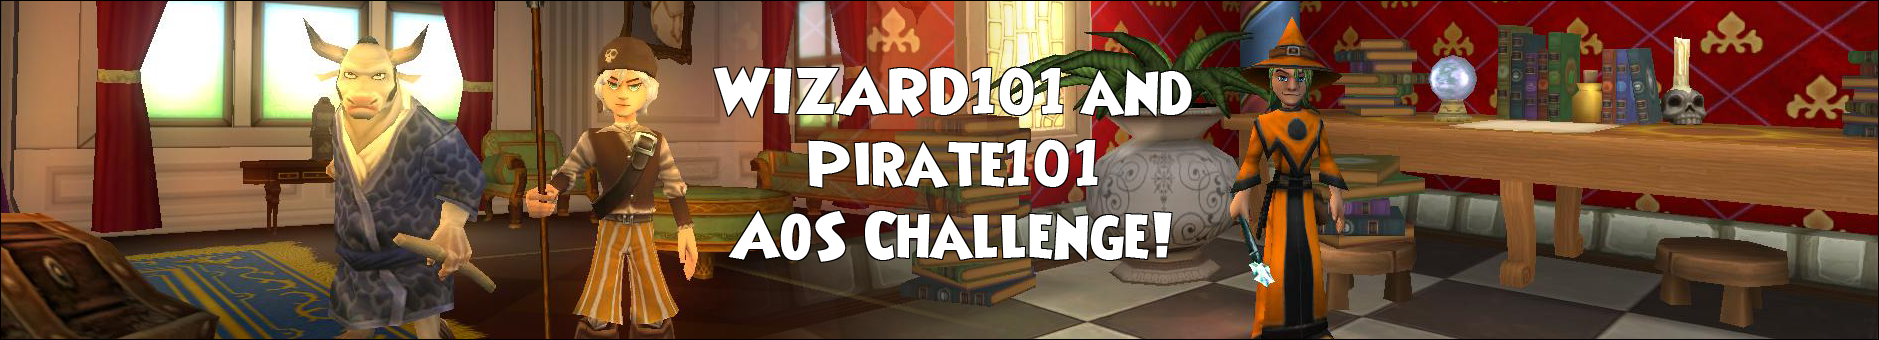 The AoS Challenge for Pirate 101 and Wizard101